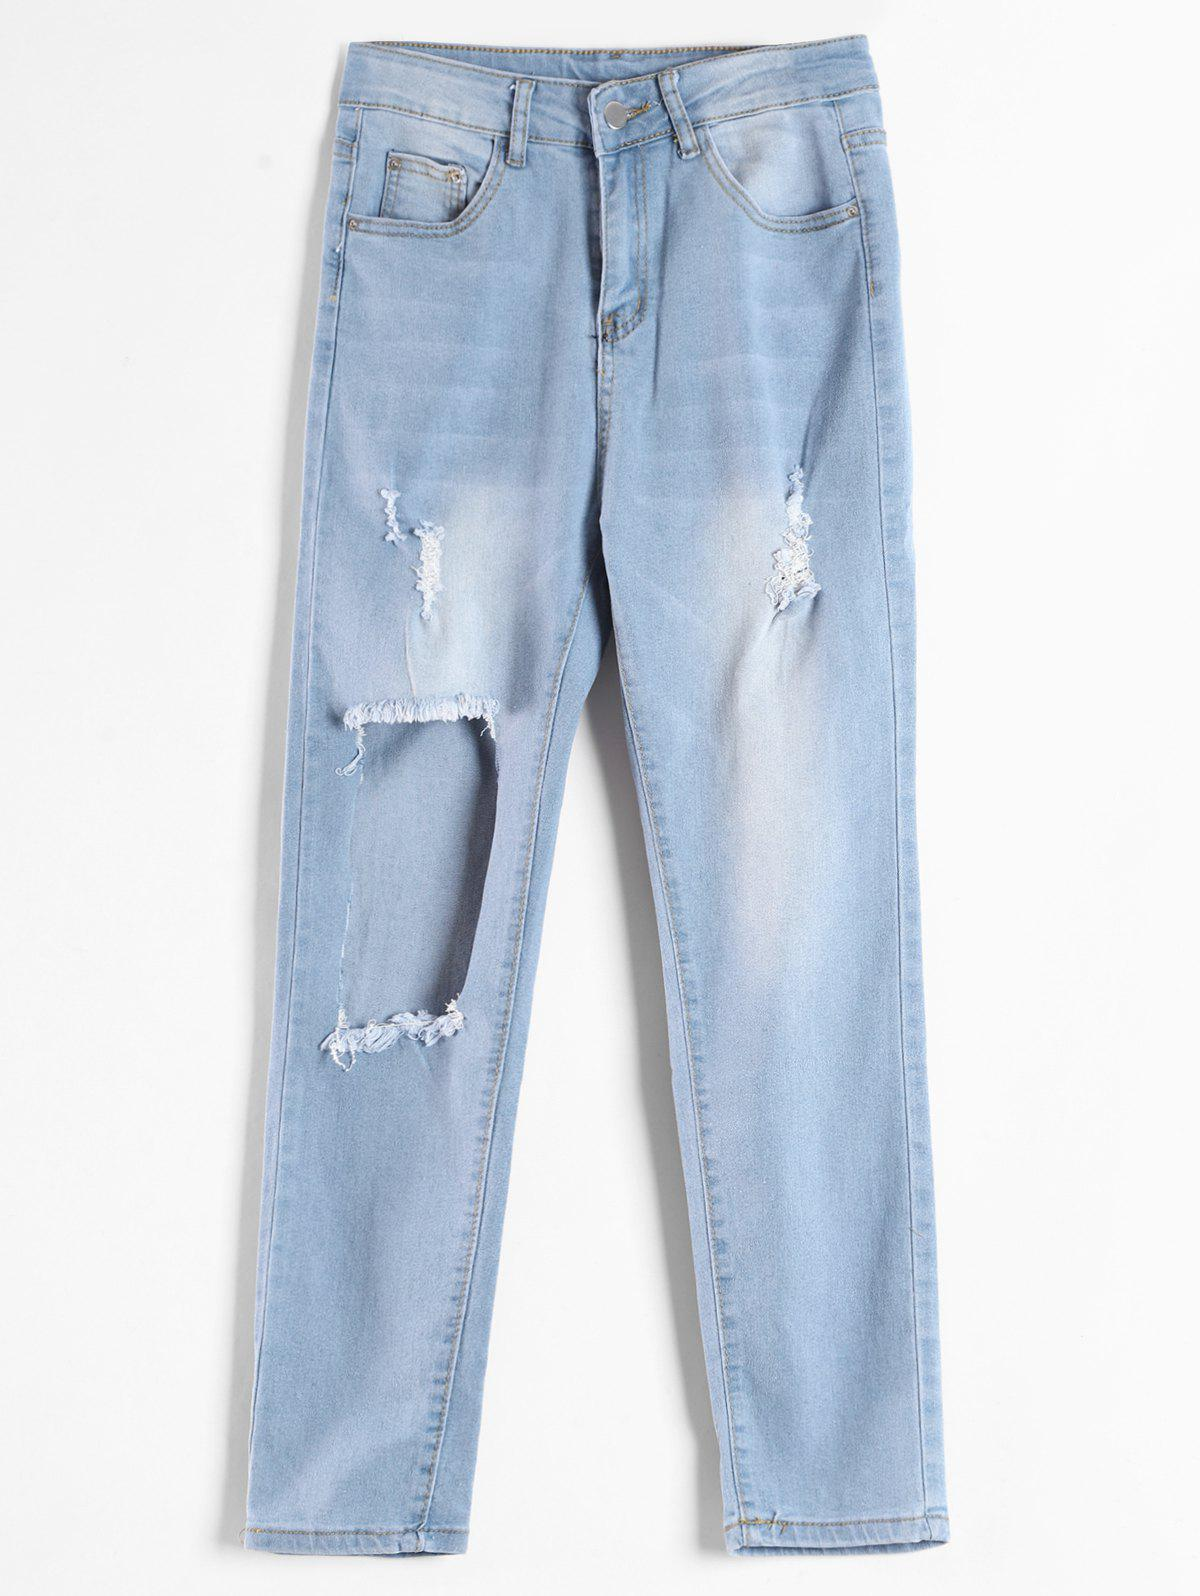 Cut Out Hole Distressed Jeans 316163002